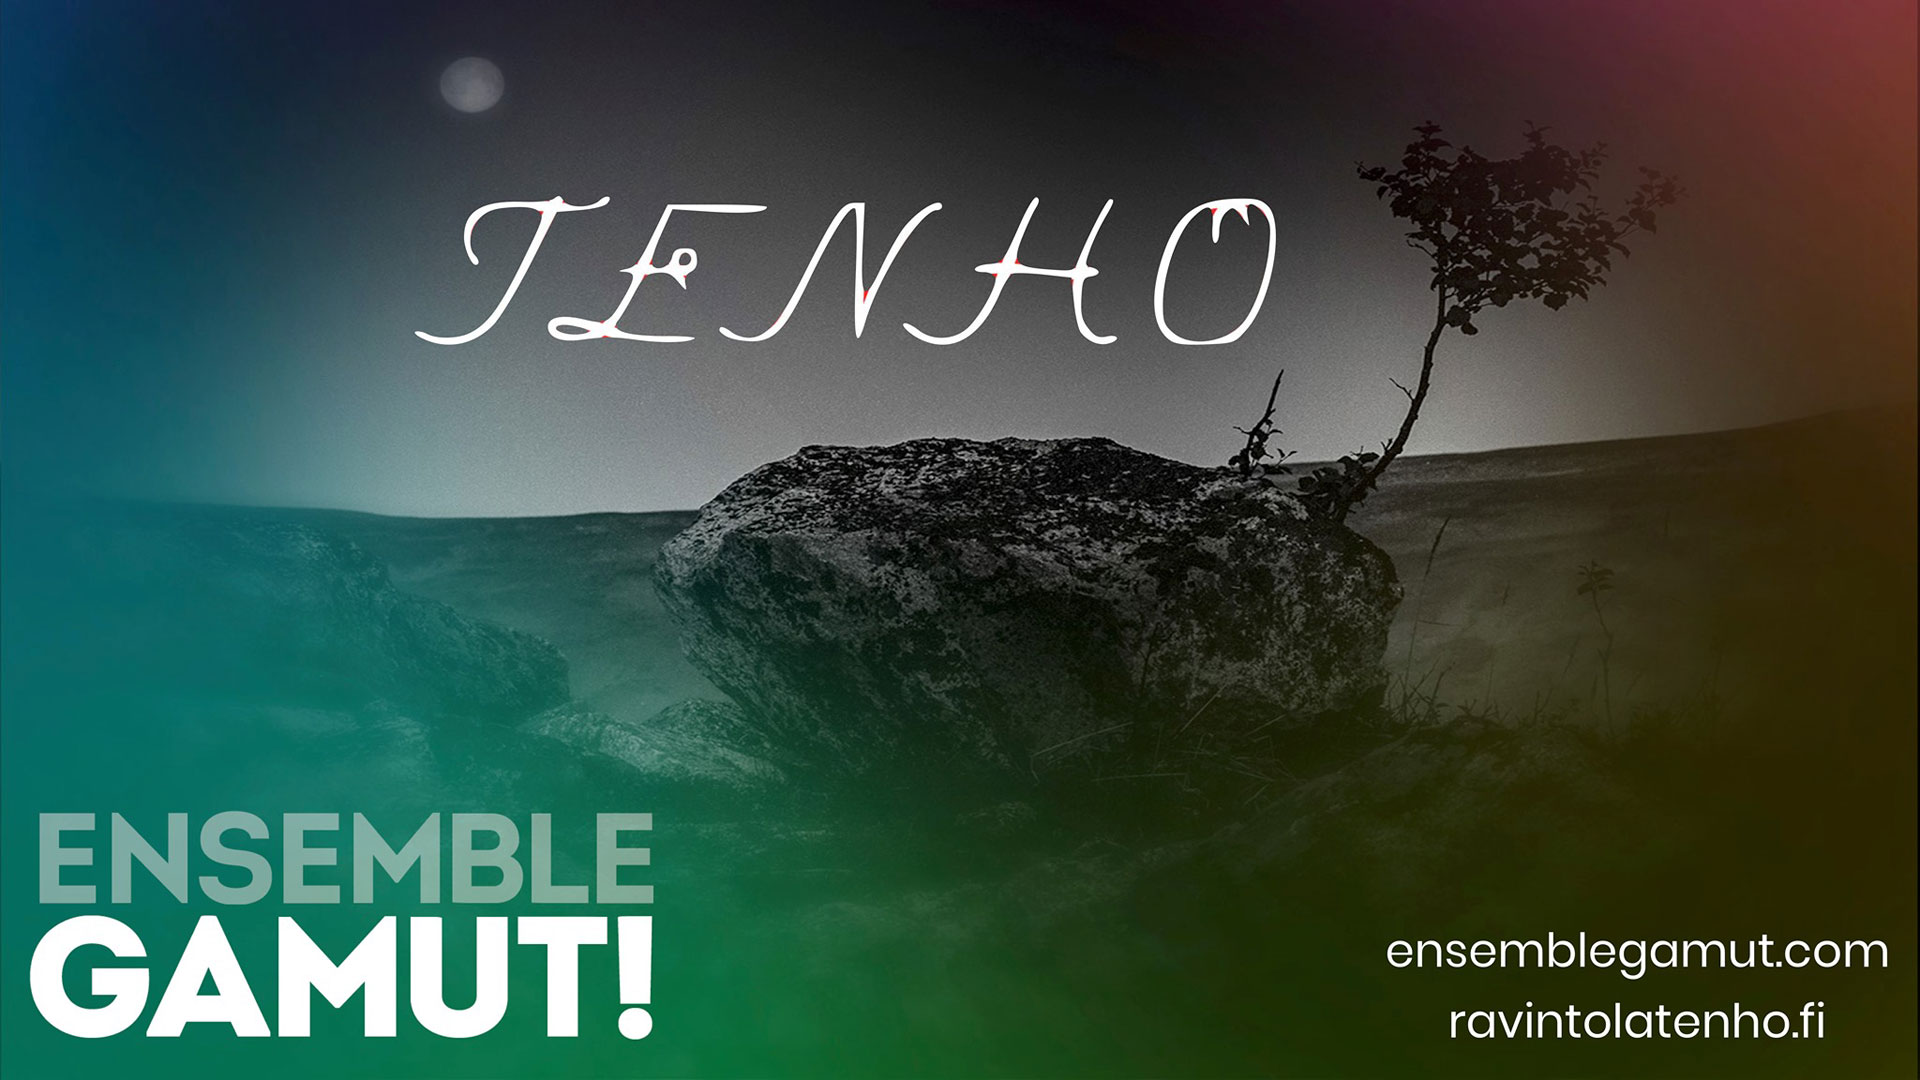 Link to event Ensemble Gamut!